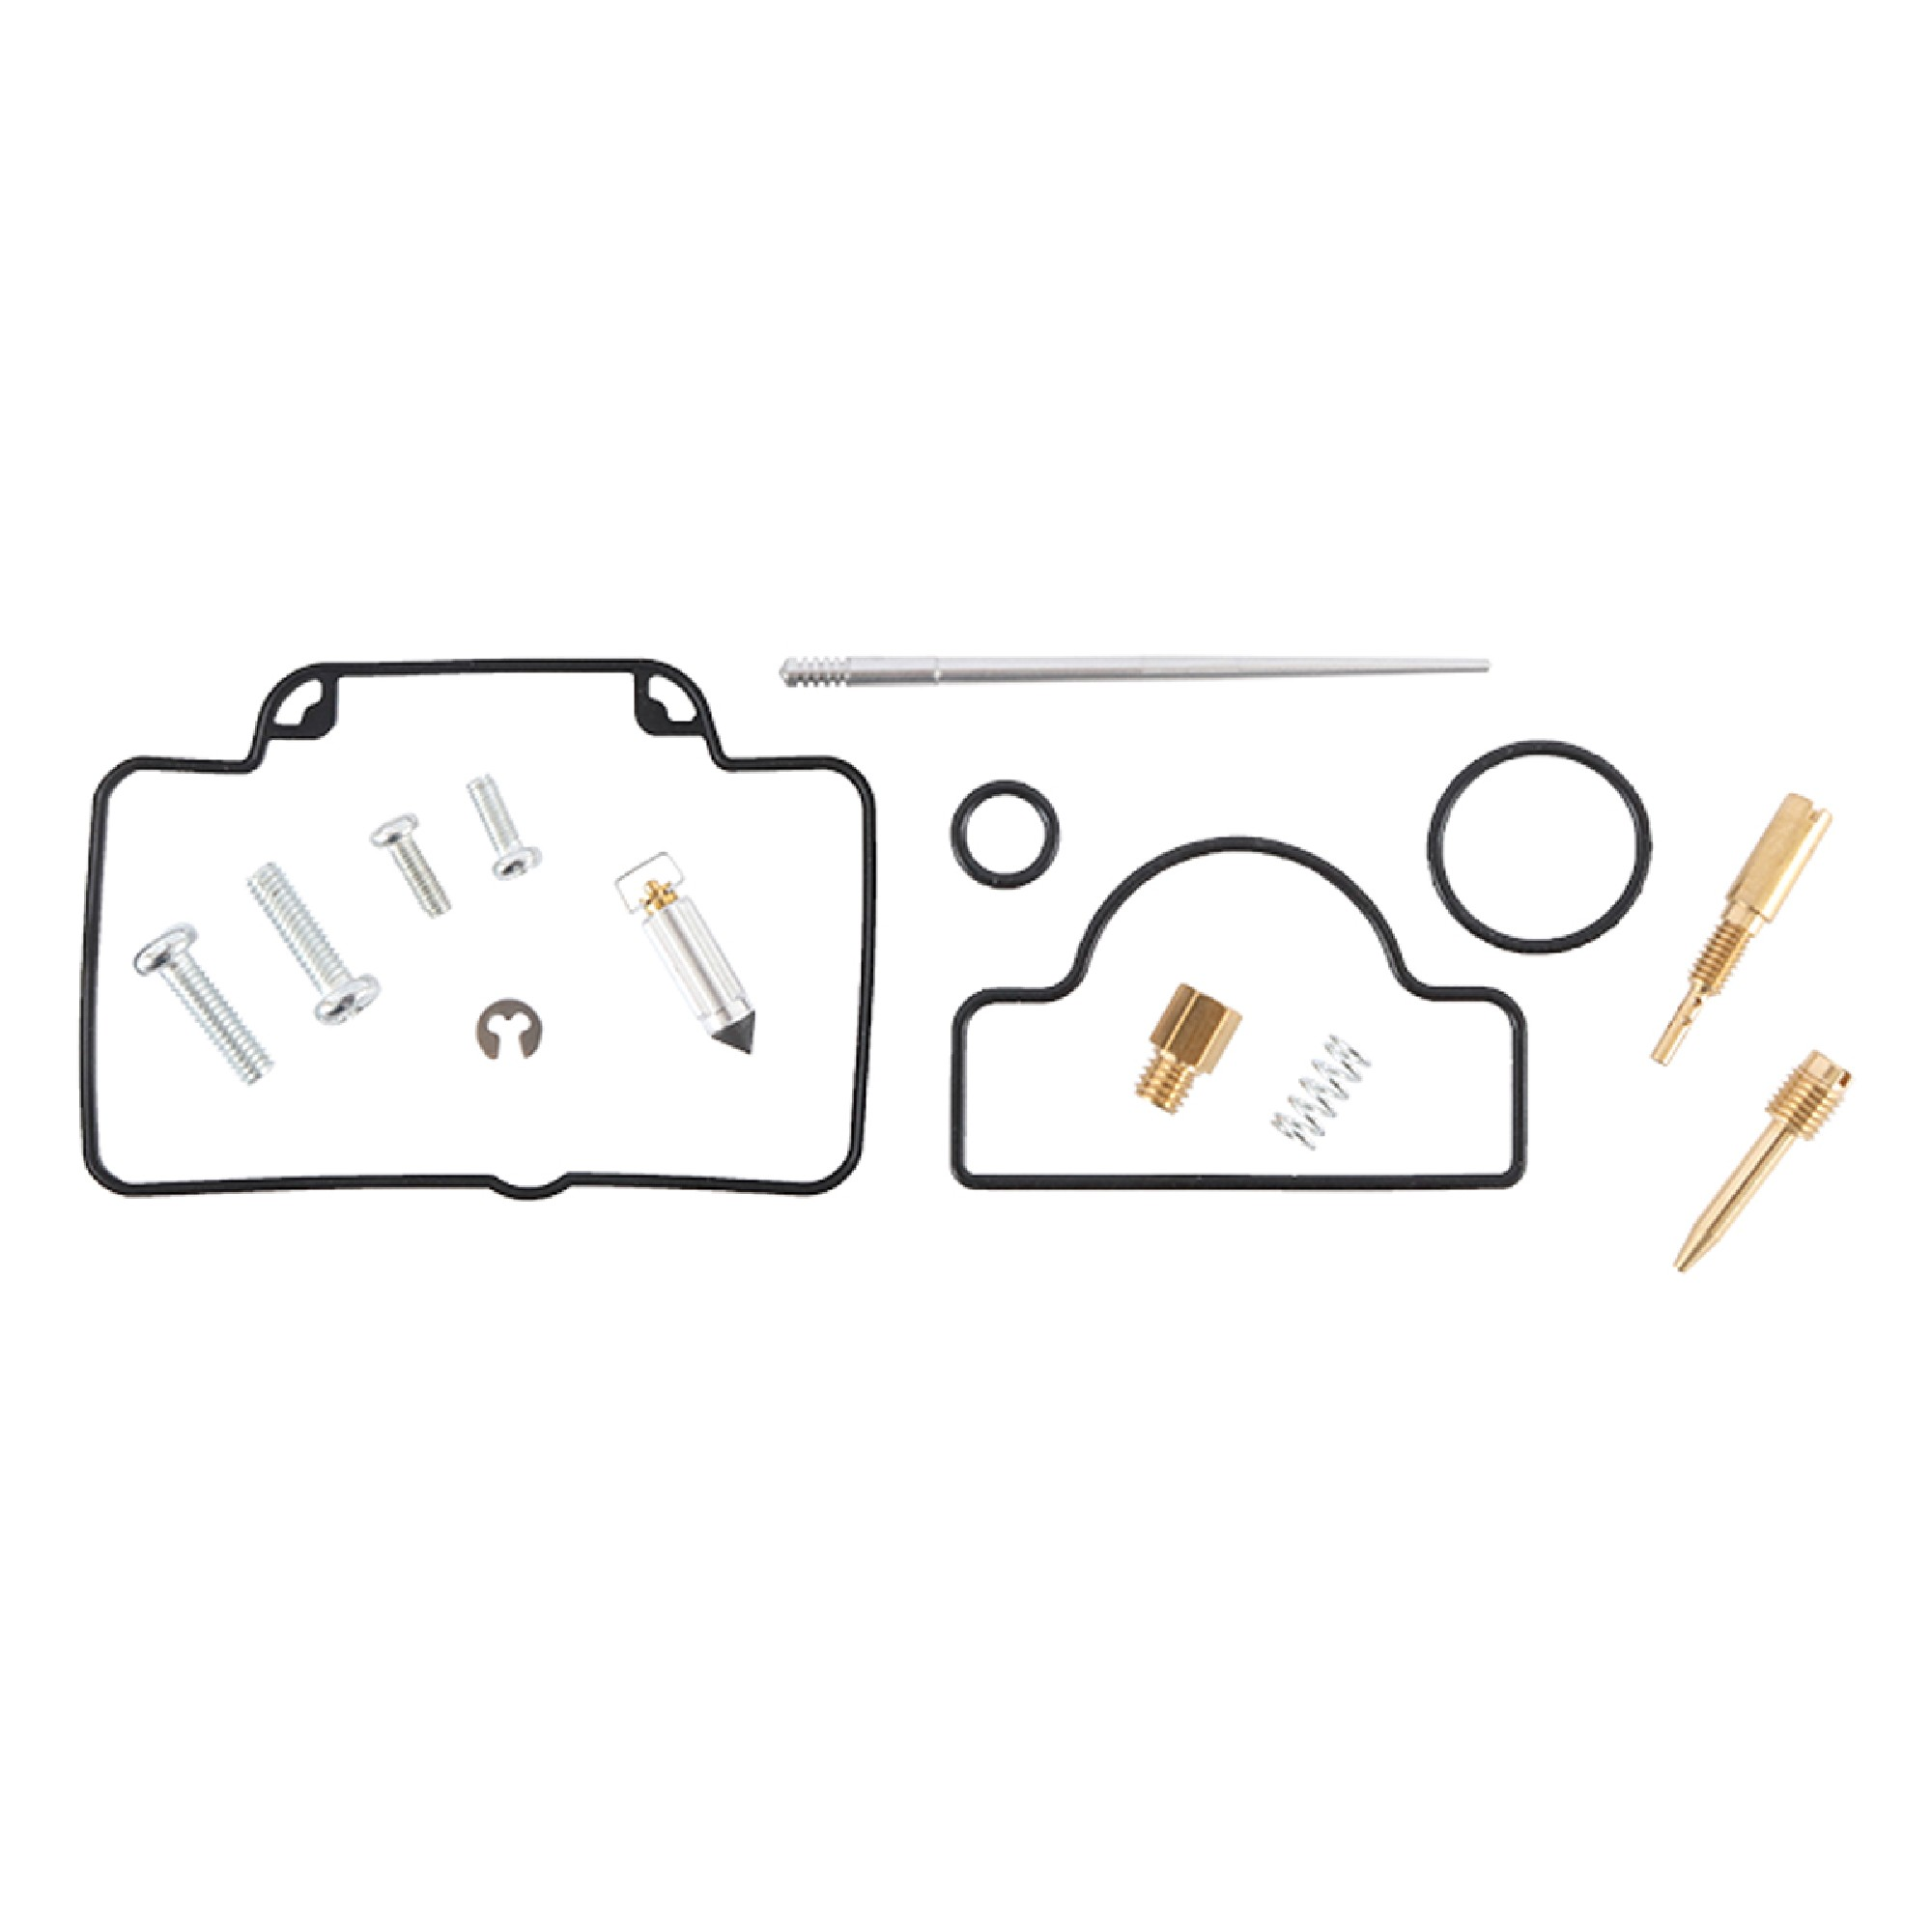 New All Balls Carburetor Kit, Complete 26-1525 for Suzuki